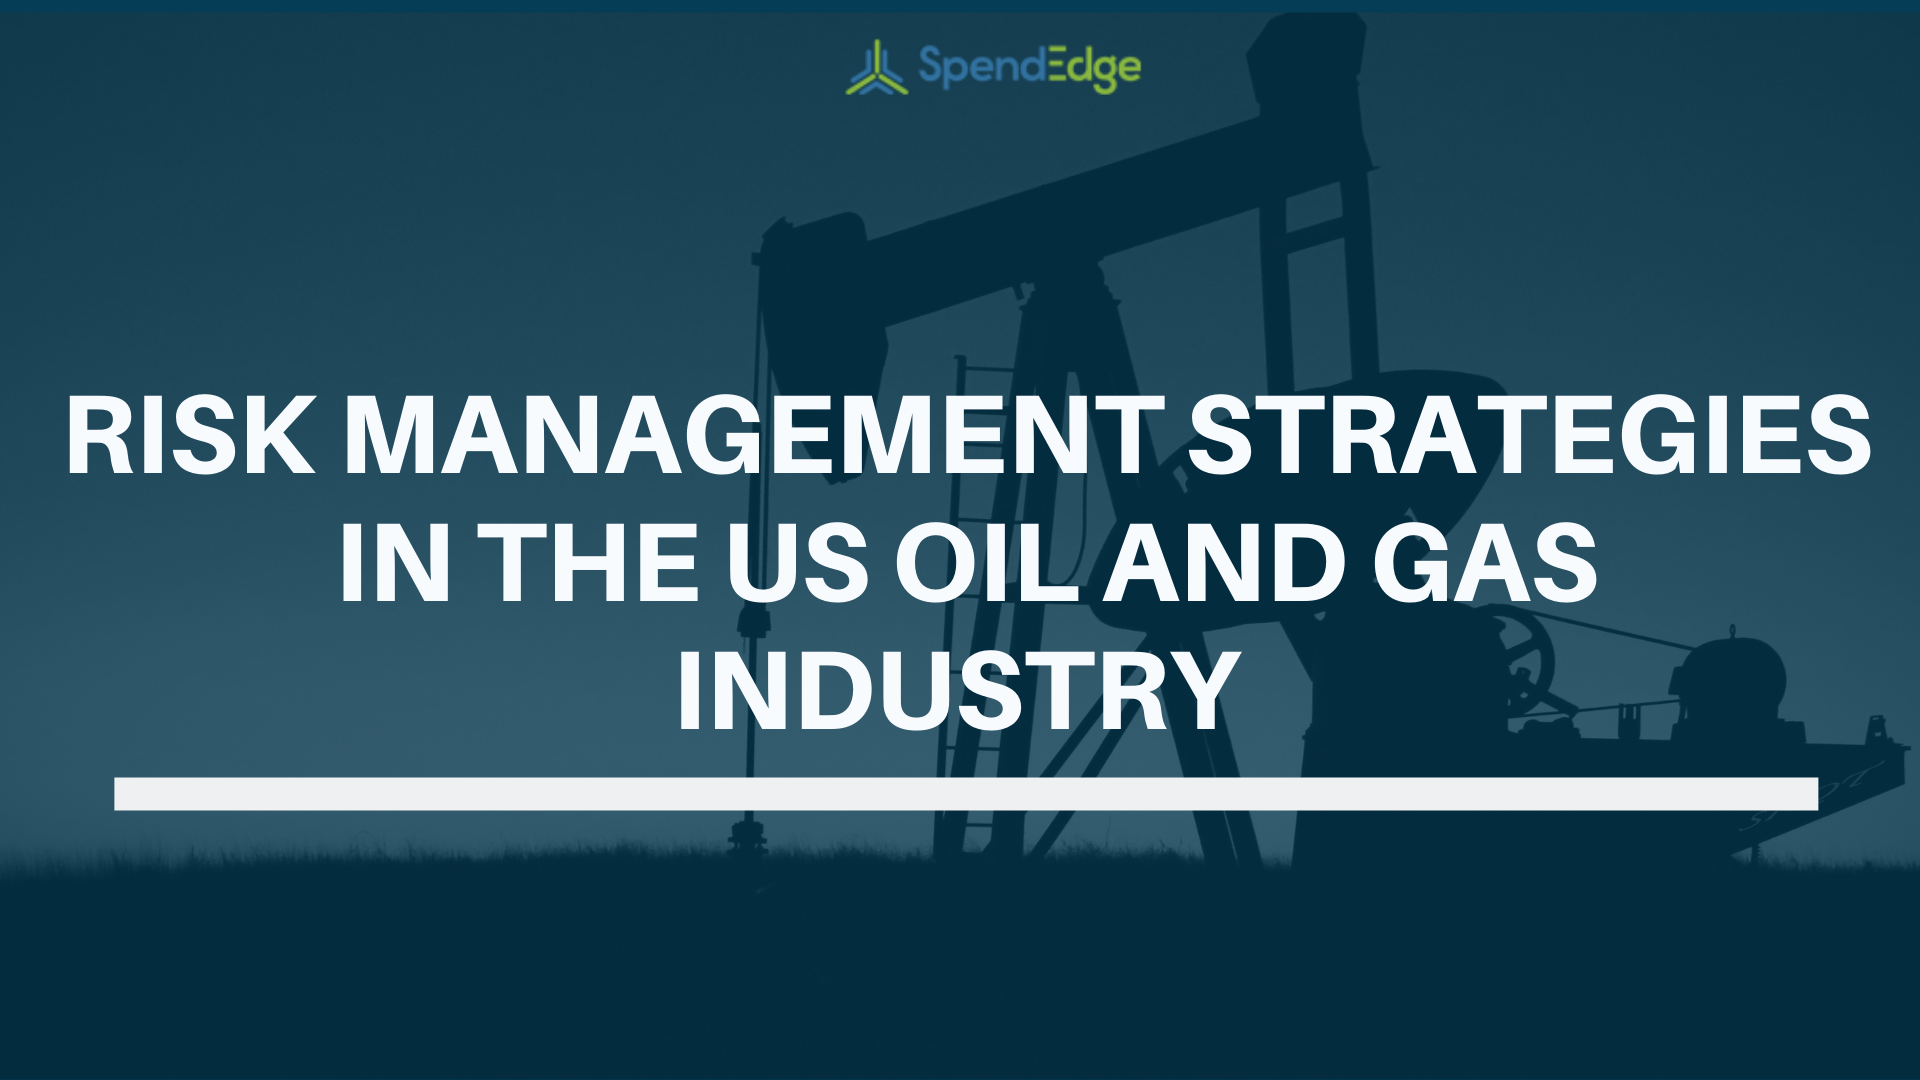 Risk Management Strategies in the US Oil and Gas Industry (1)